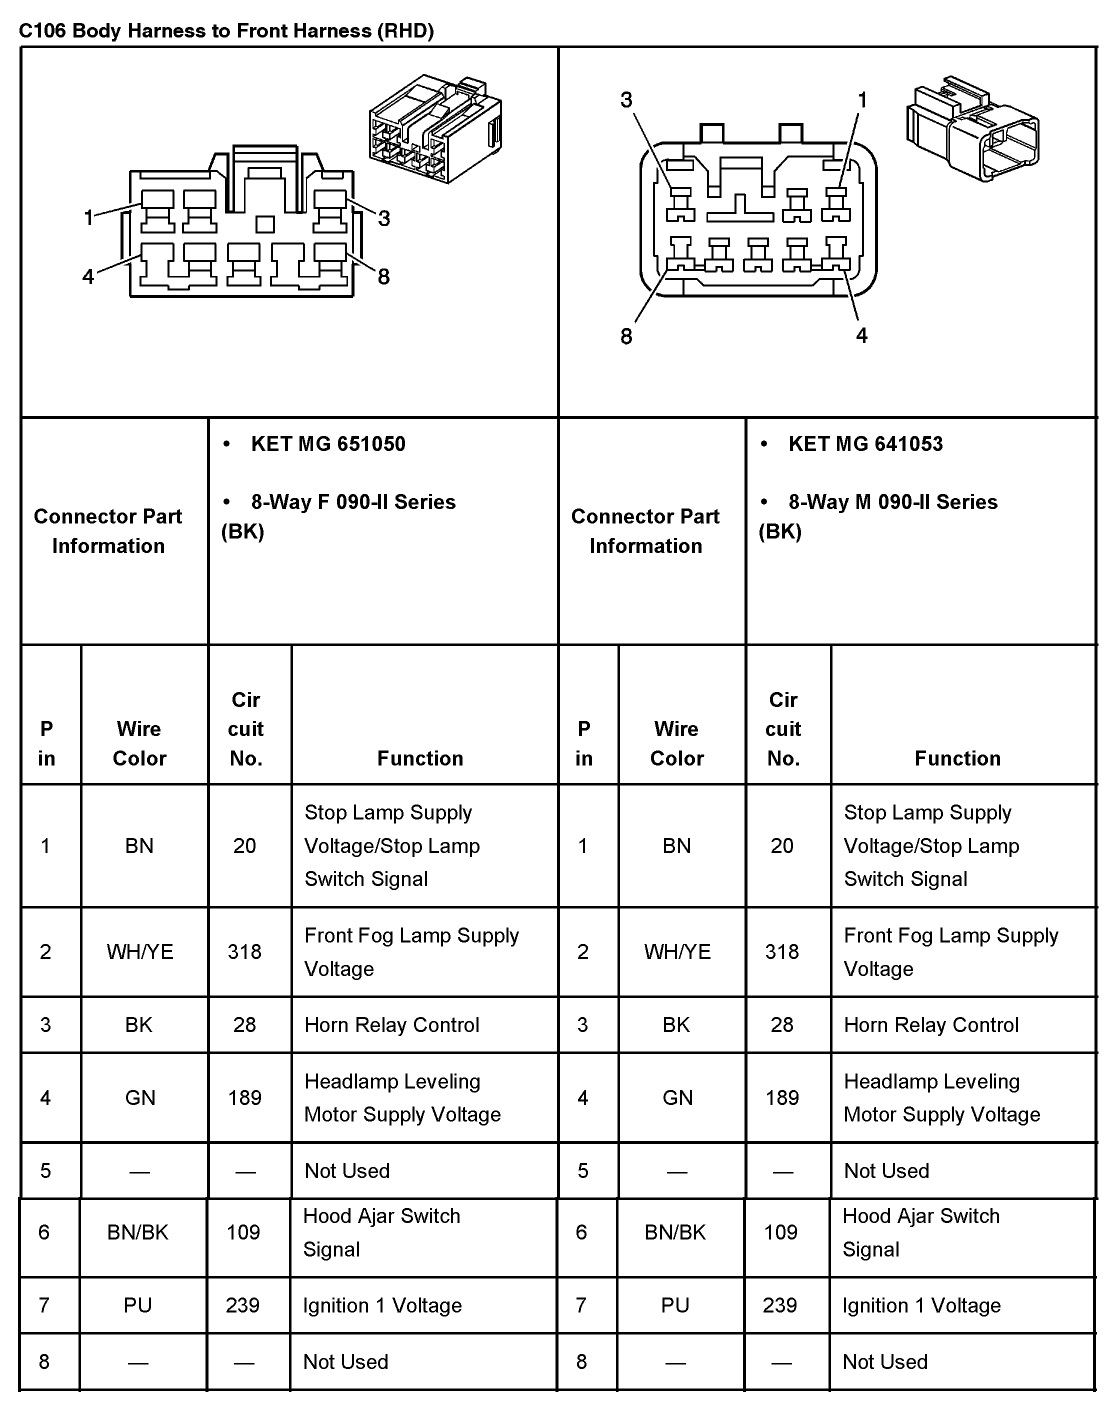 2005 Chevy Aveo Fuse Box Another Blog About Wiring Diagram 2009 Camry Location 33